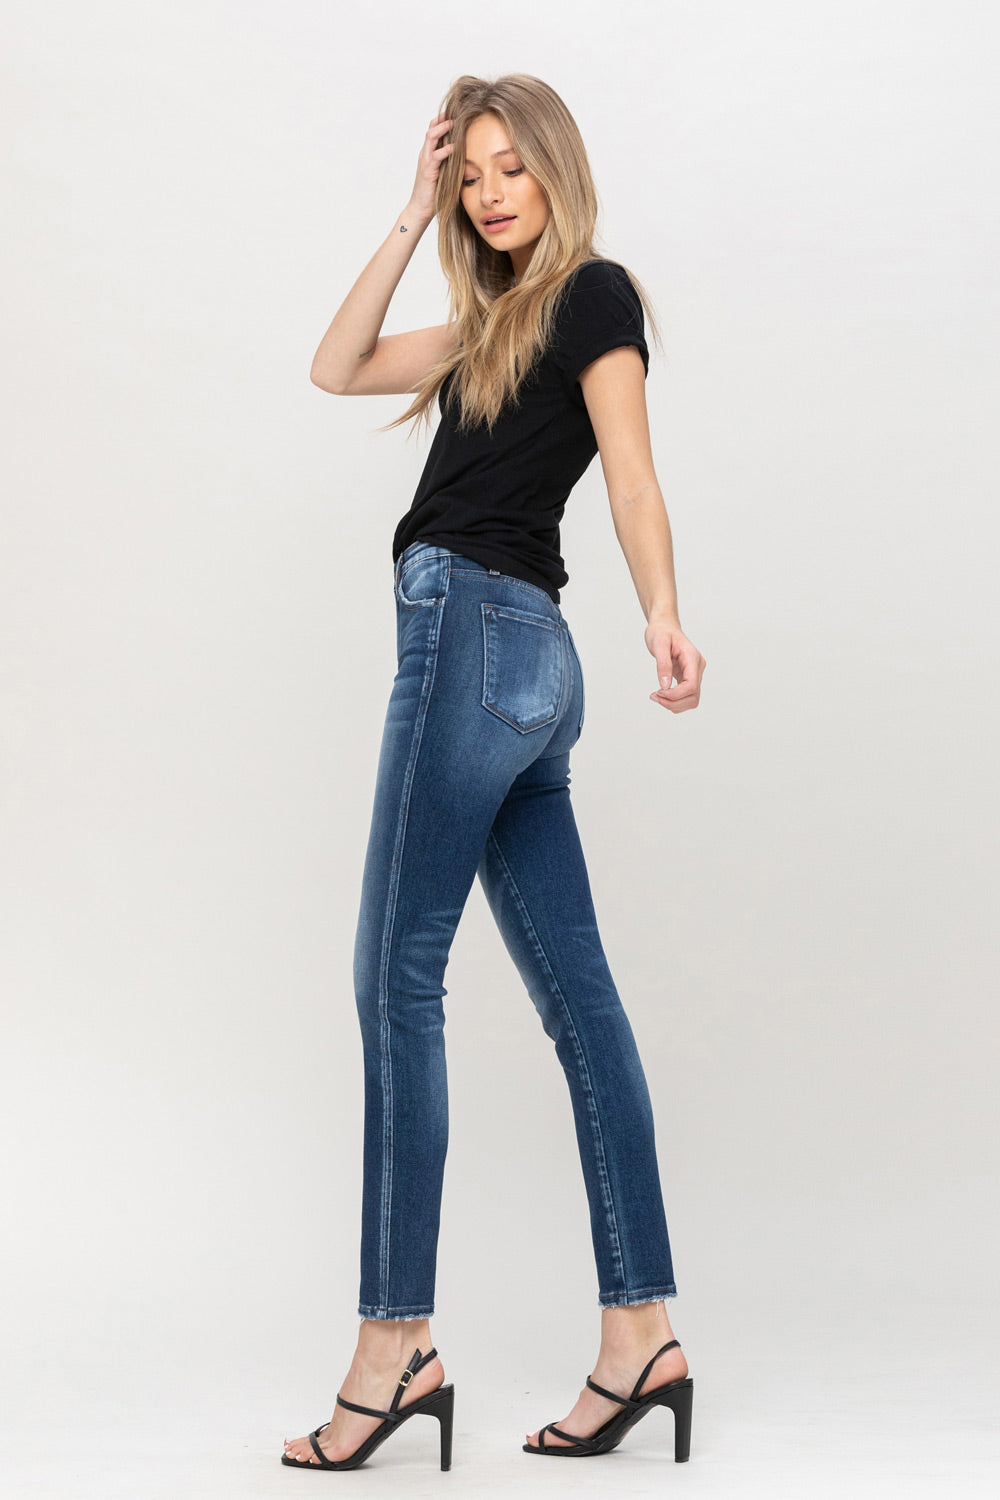 Y3899 - High rise ankle skinny jeans